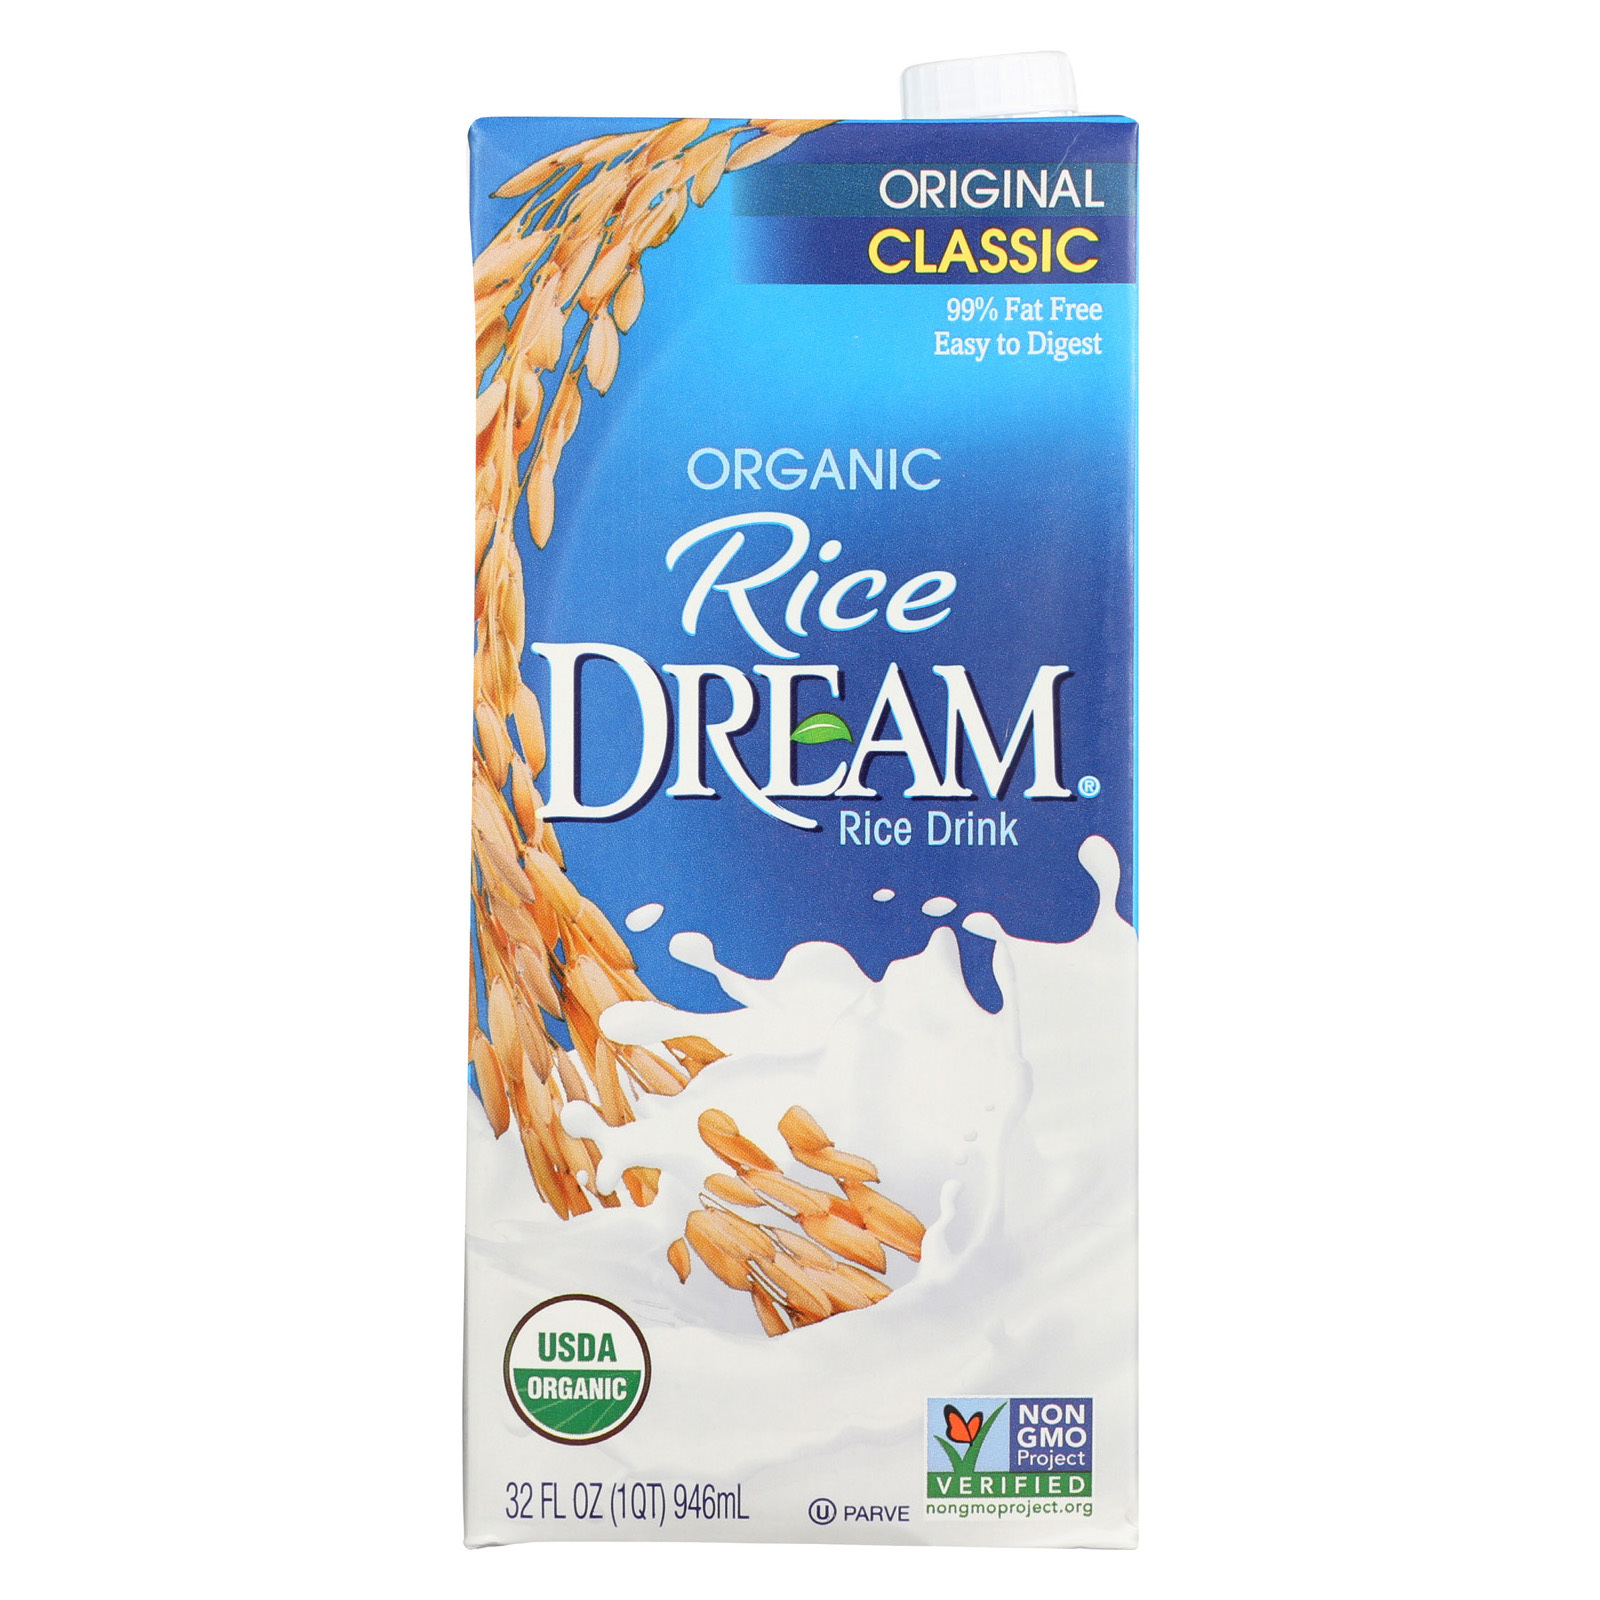 Rice Dream Organic Rice Dream - Original - 32 fl oz